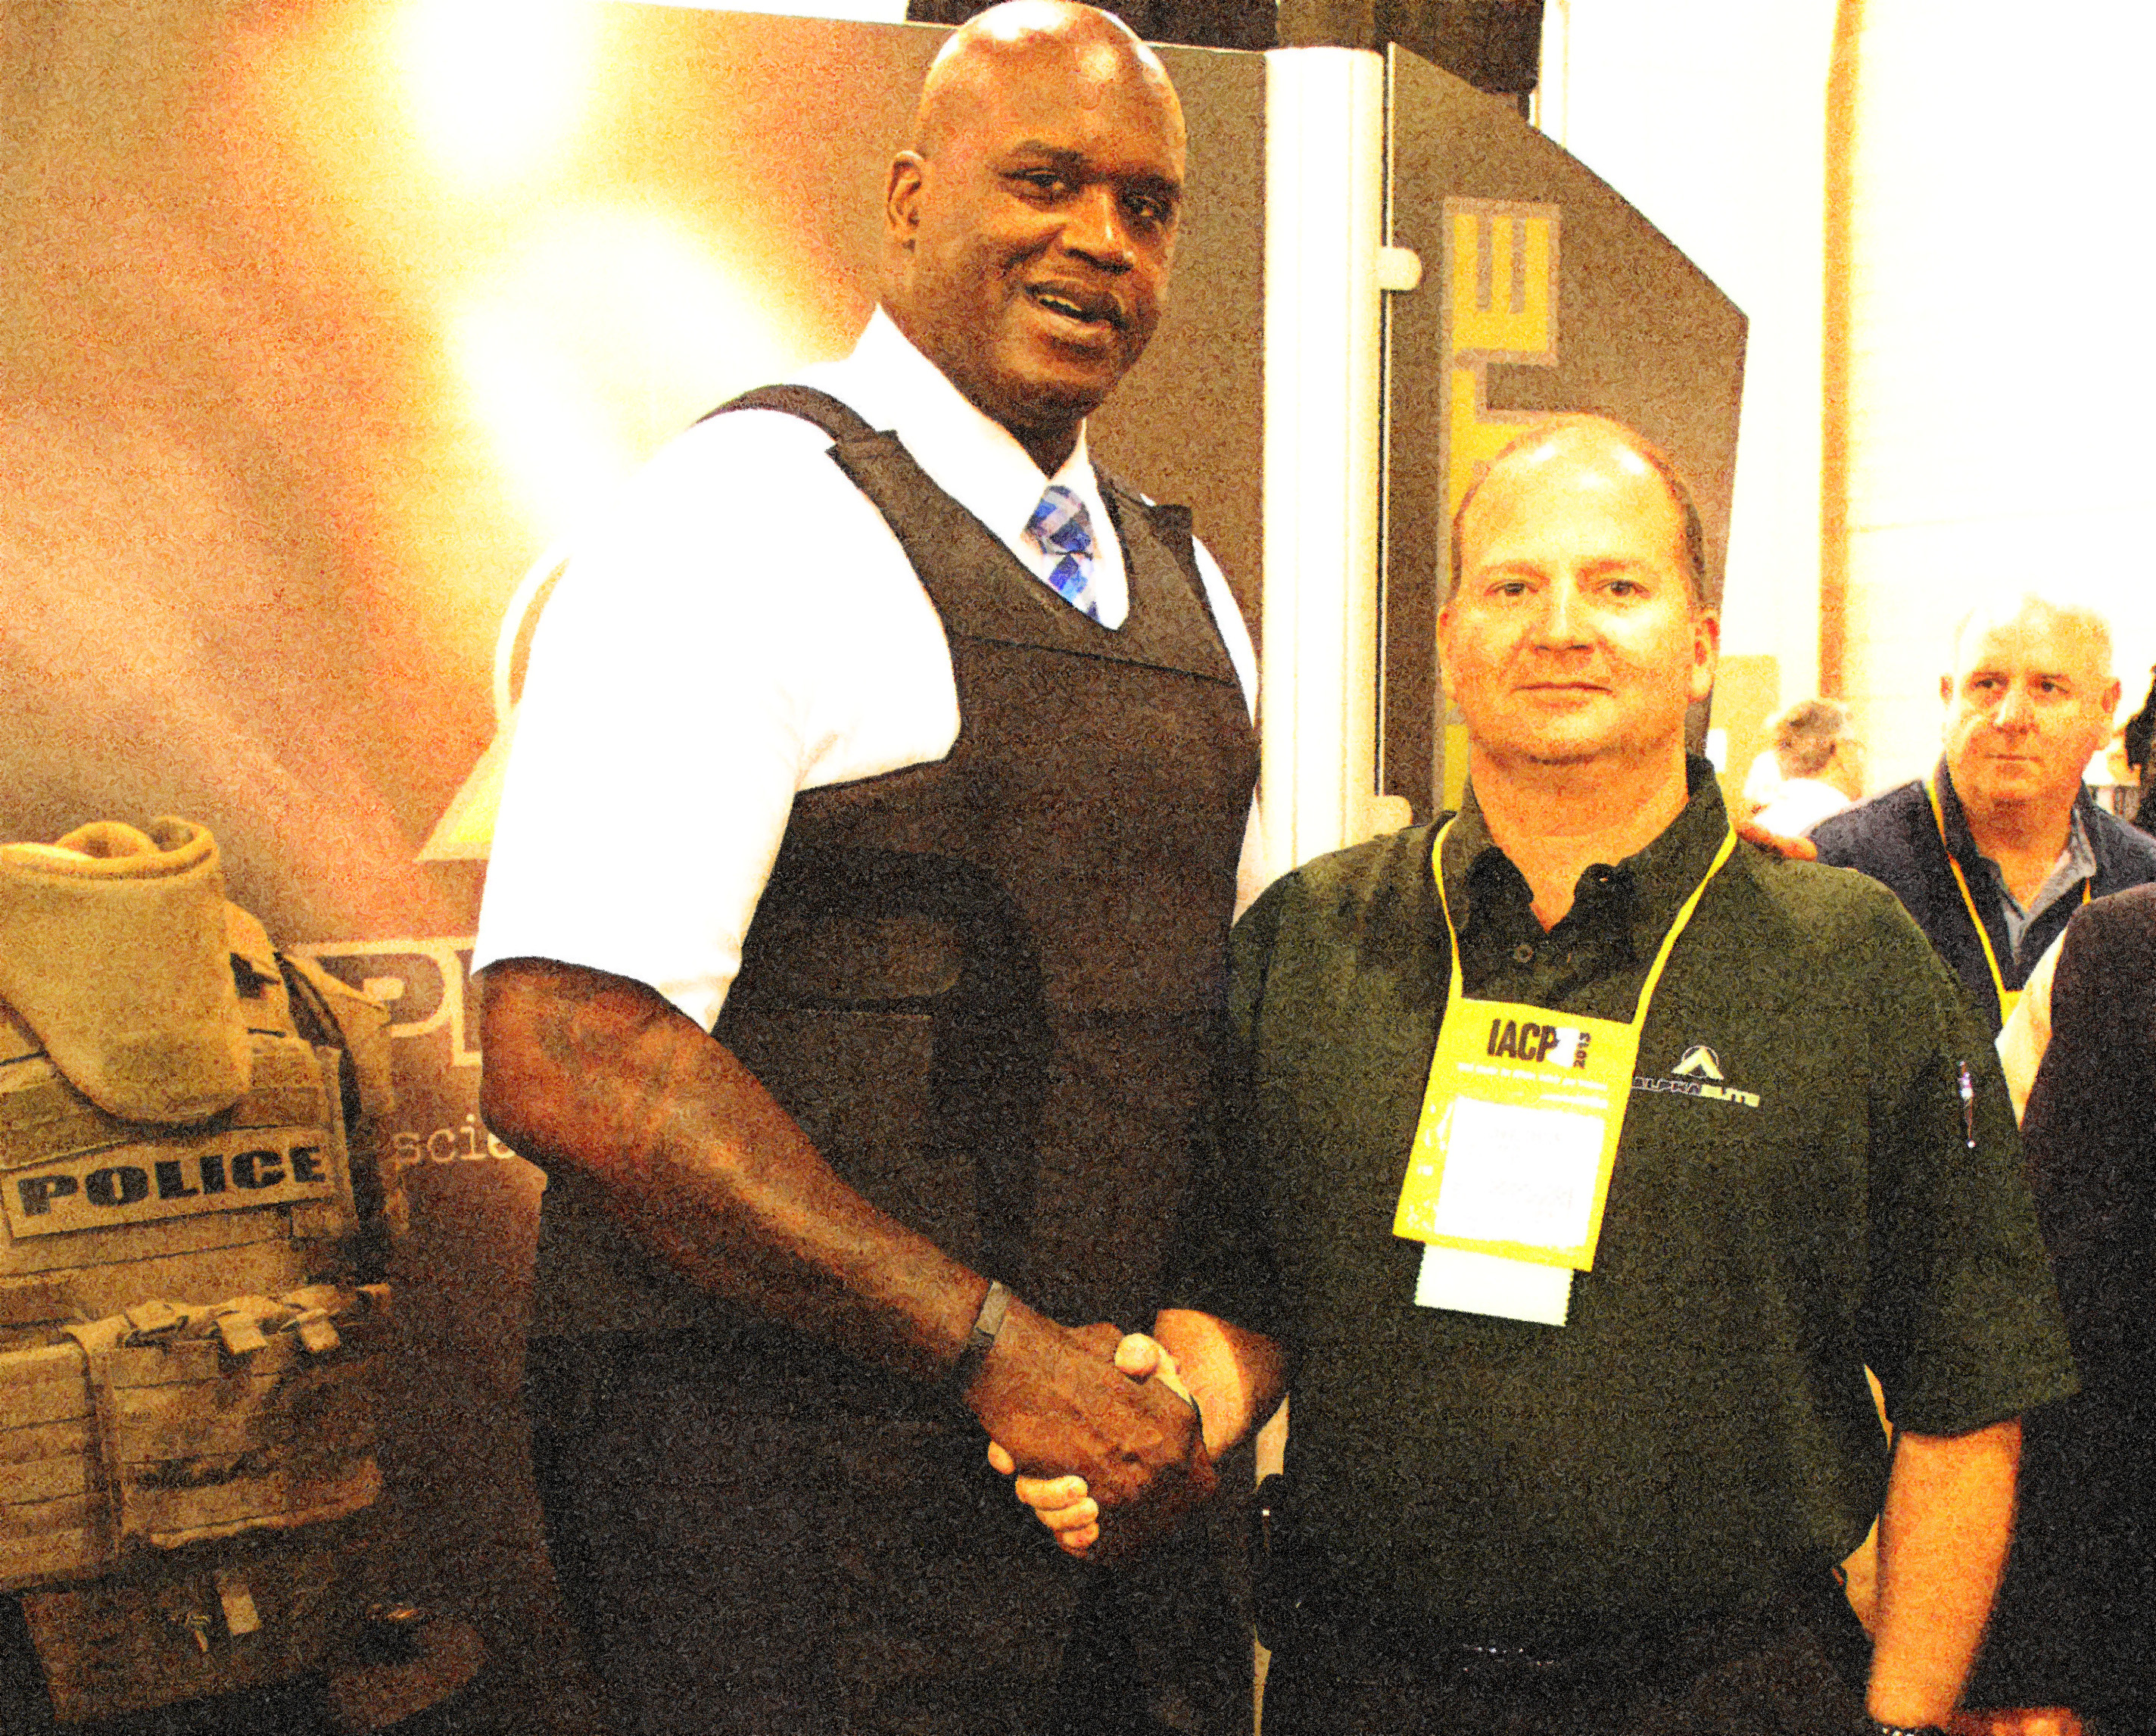 IACP 2013 - Shaq in his Point Blank Alpha Elite with CEO Daniel Gaston